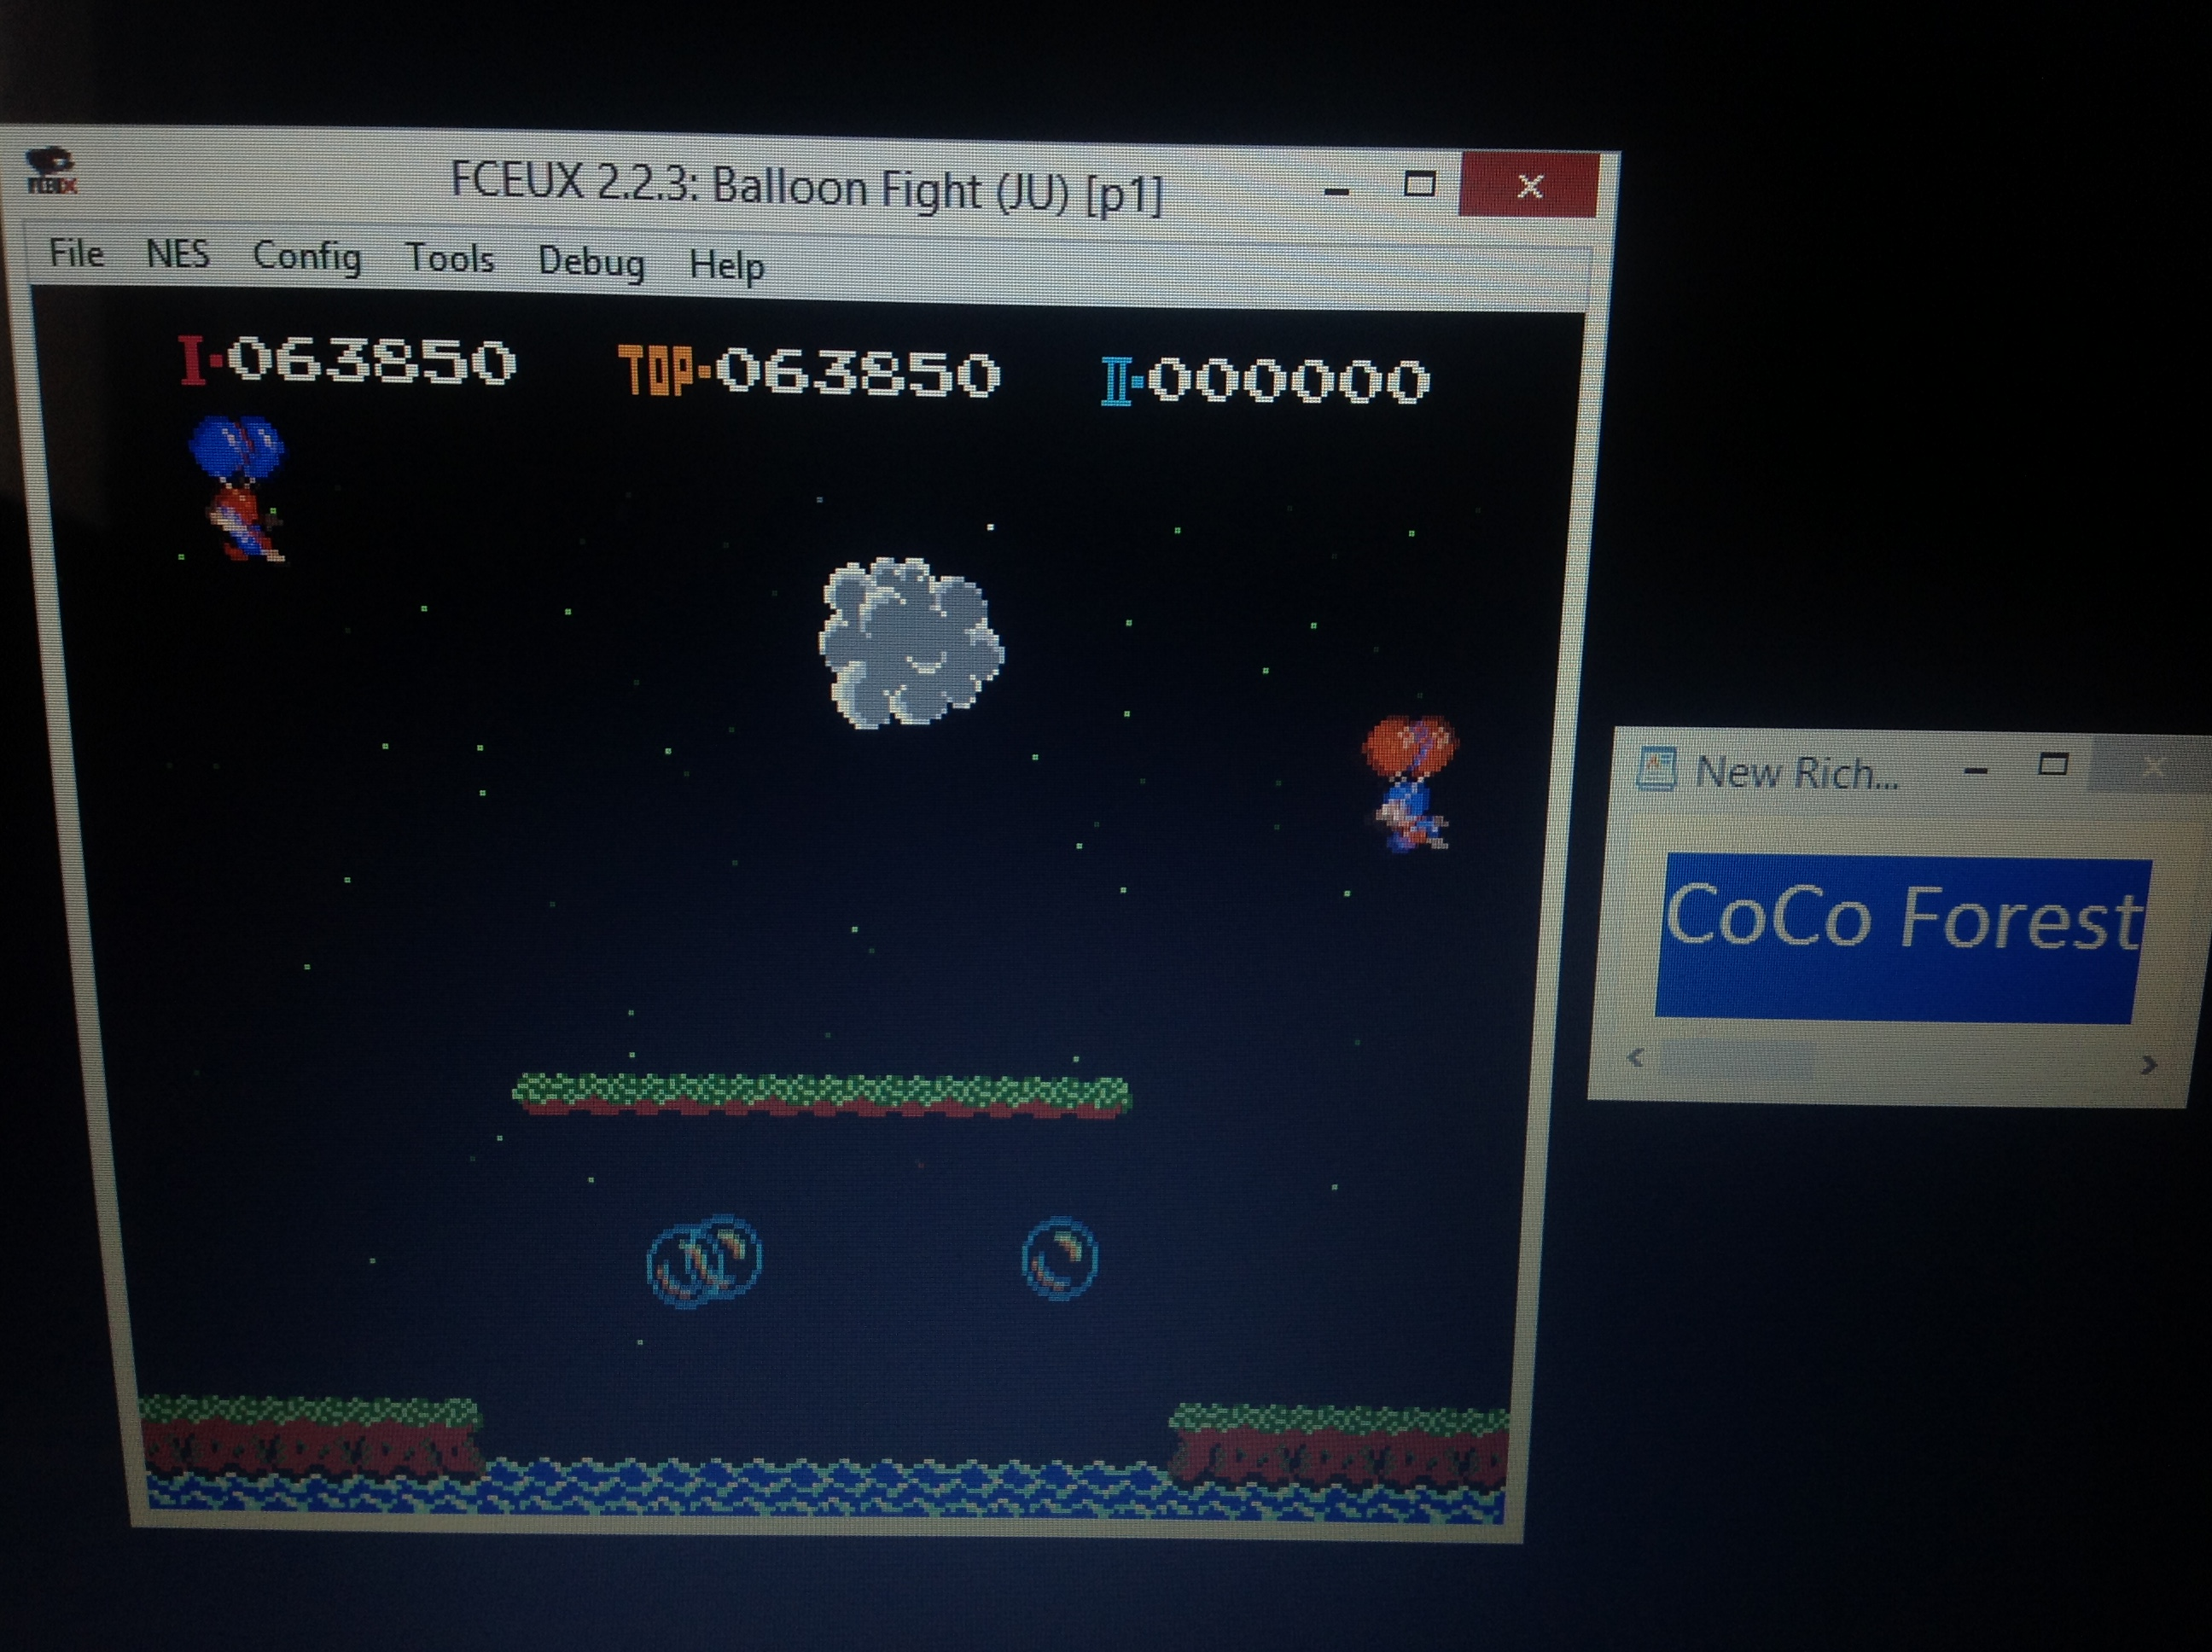 CoCoForest: Balloon Fight (NES/Famicom Emulated) 63,850 points on 2018-10-04 06:42:51